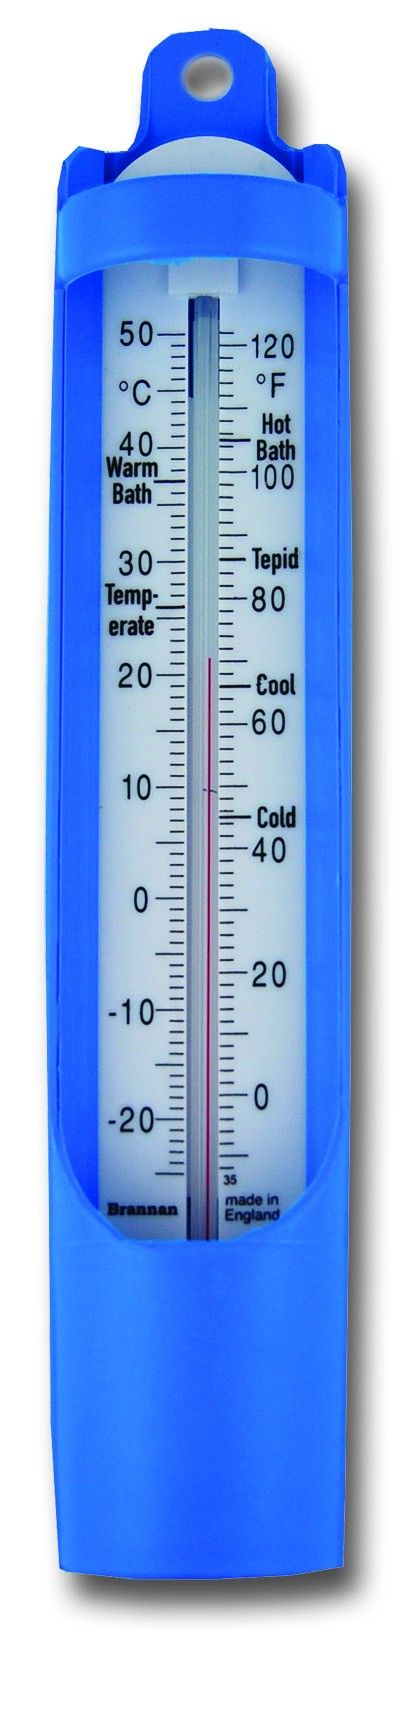 Scoop Bath Thermometer - 230mm - 230mm blue scoop bath thermometer with black temperature scale and recommended zones. Take a sample of bath water to measure the temperature prior to bathing with our scoop bath thermometers.